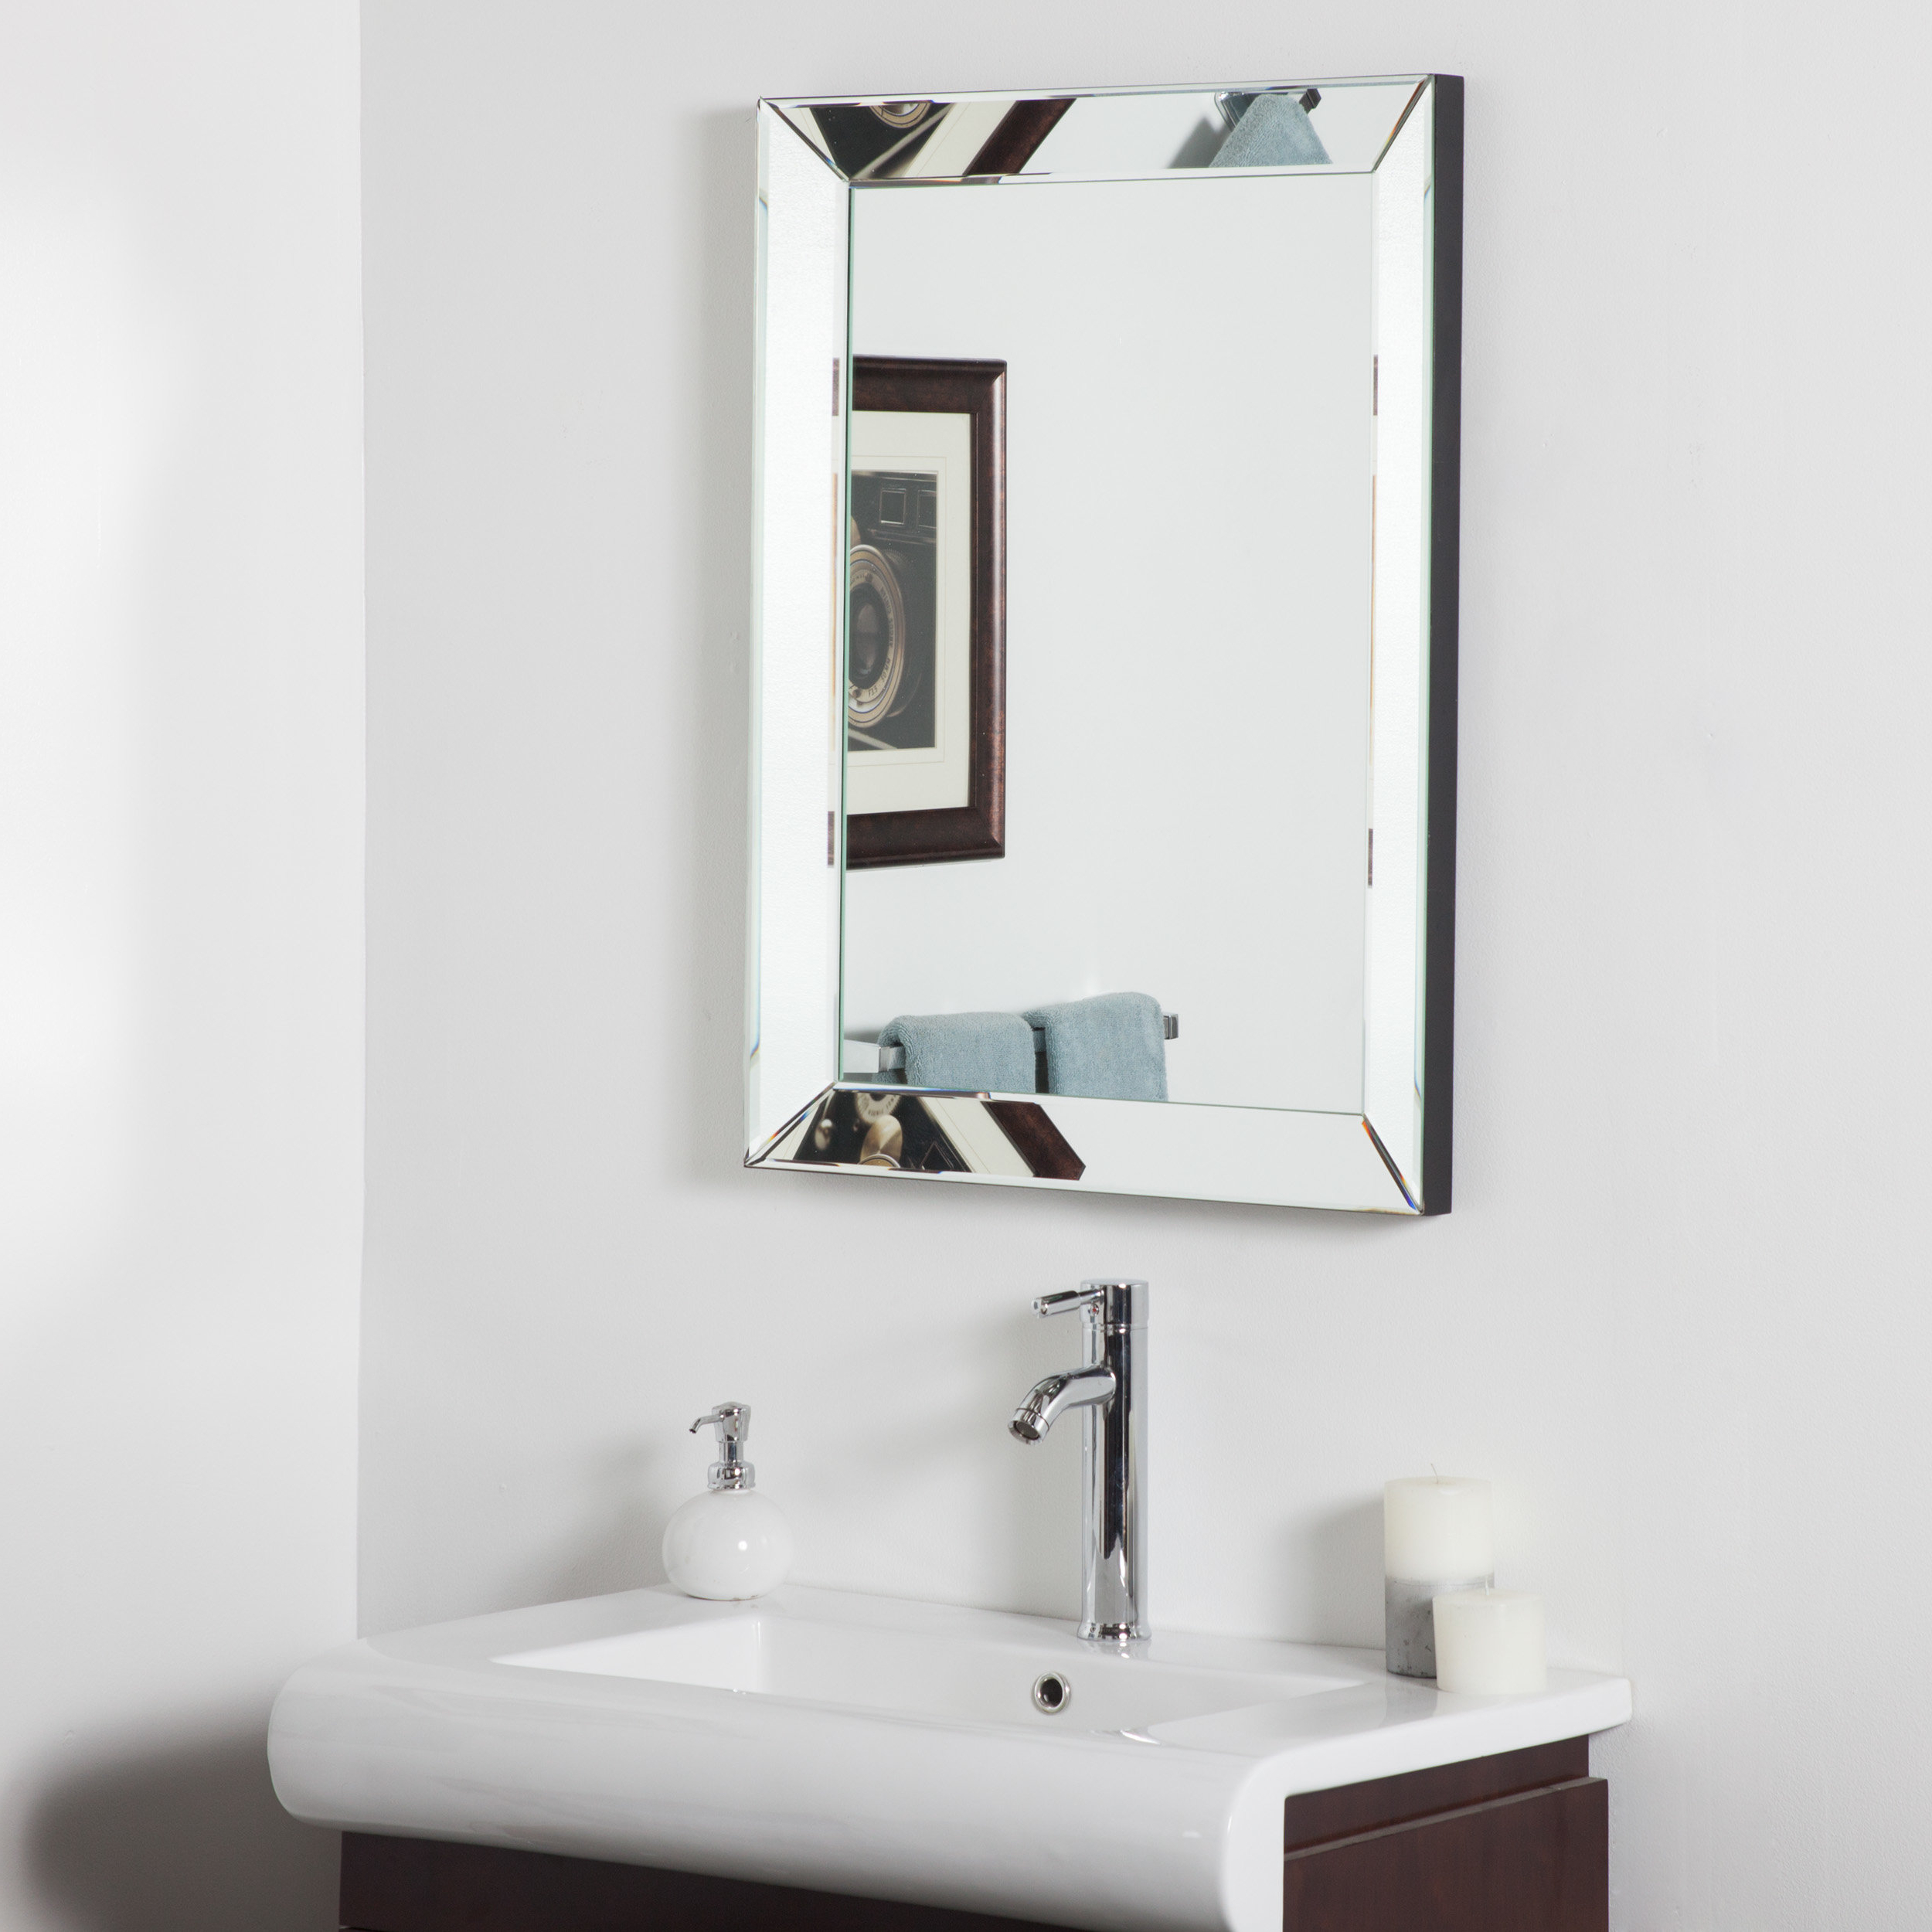 Widely Used Rectangle Silver Vanity Wall Mirror Inside Vanity Wall Mirrors For Bathroom (View 9 of 20)